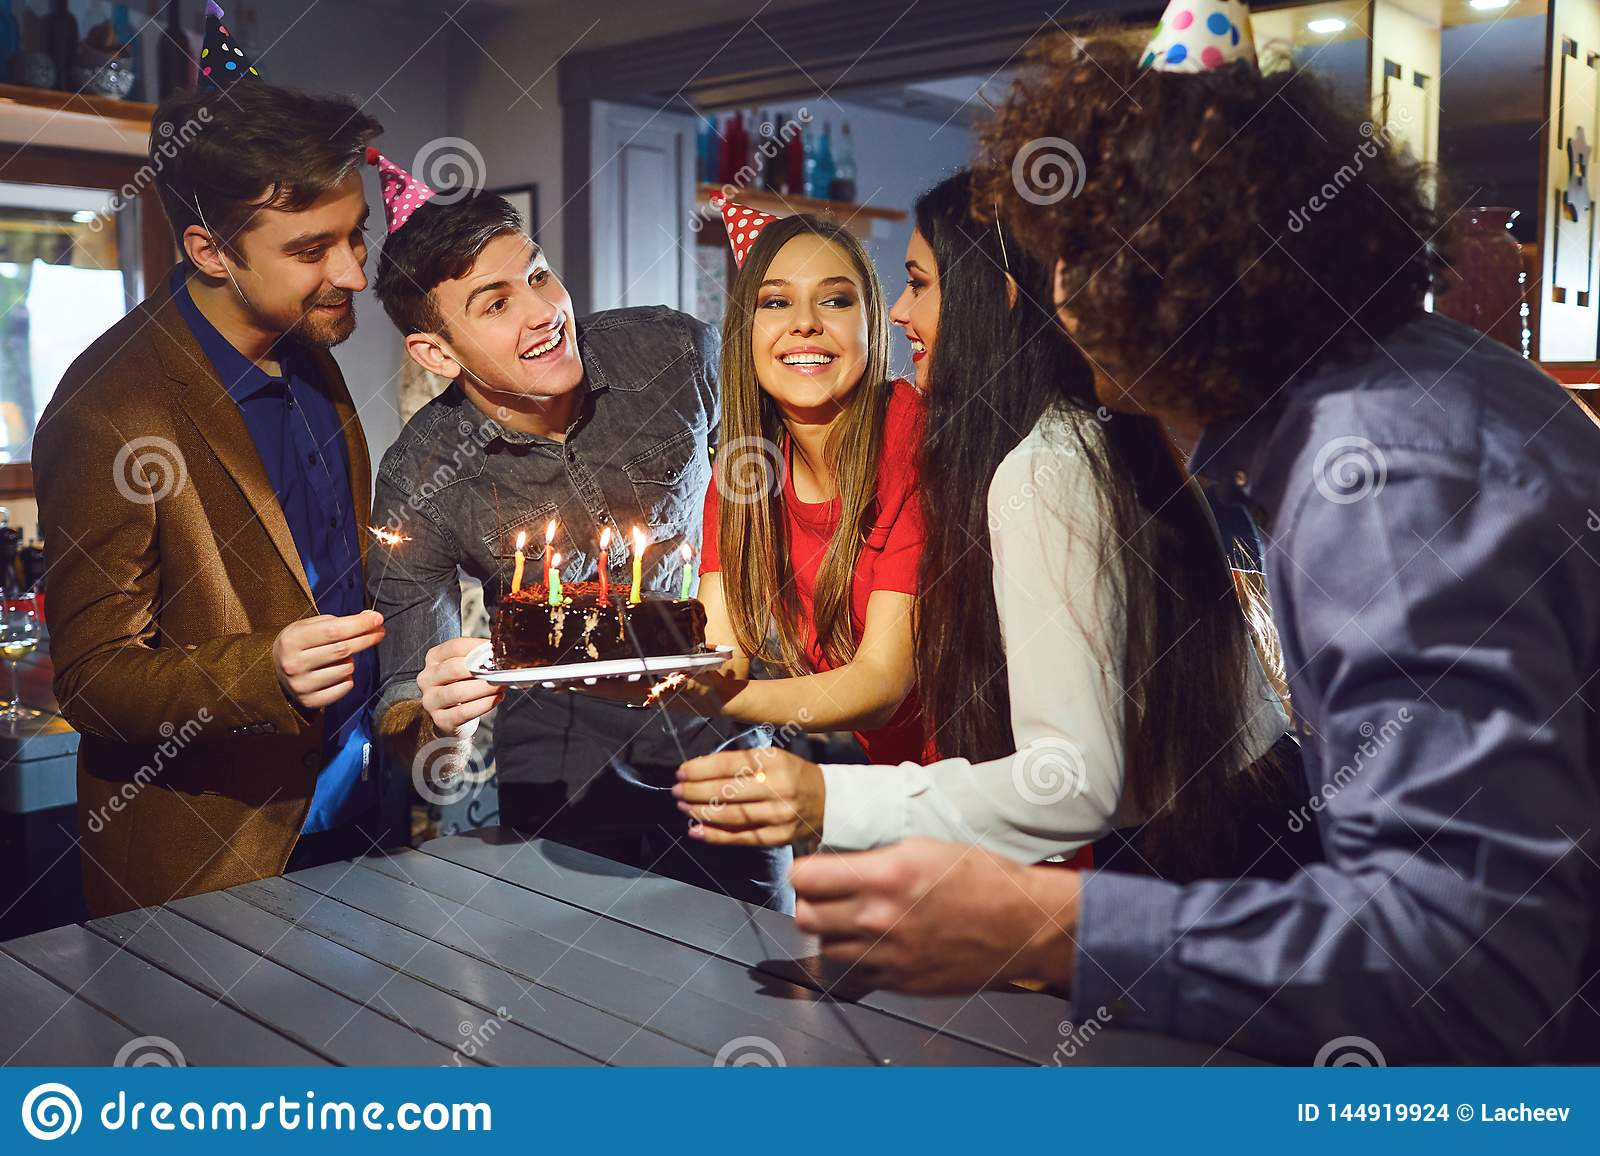 Friends celebrating birthday party indoors